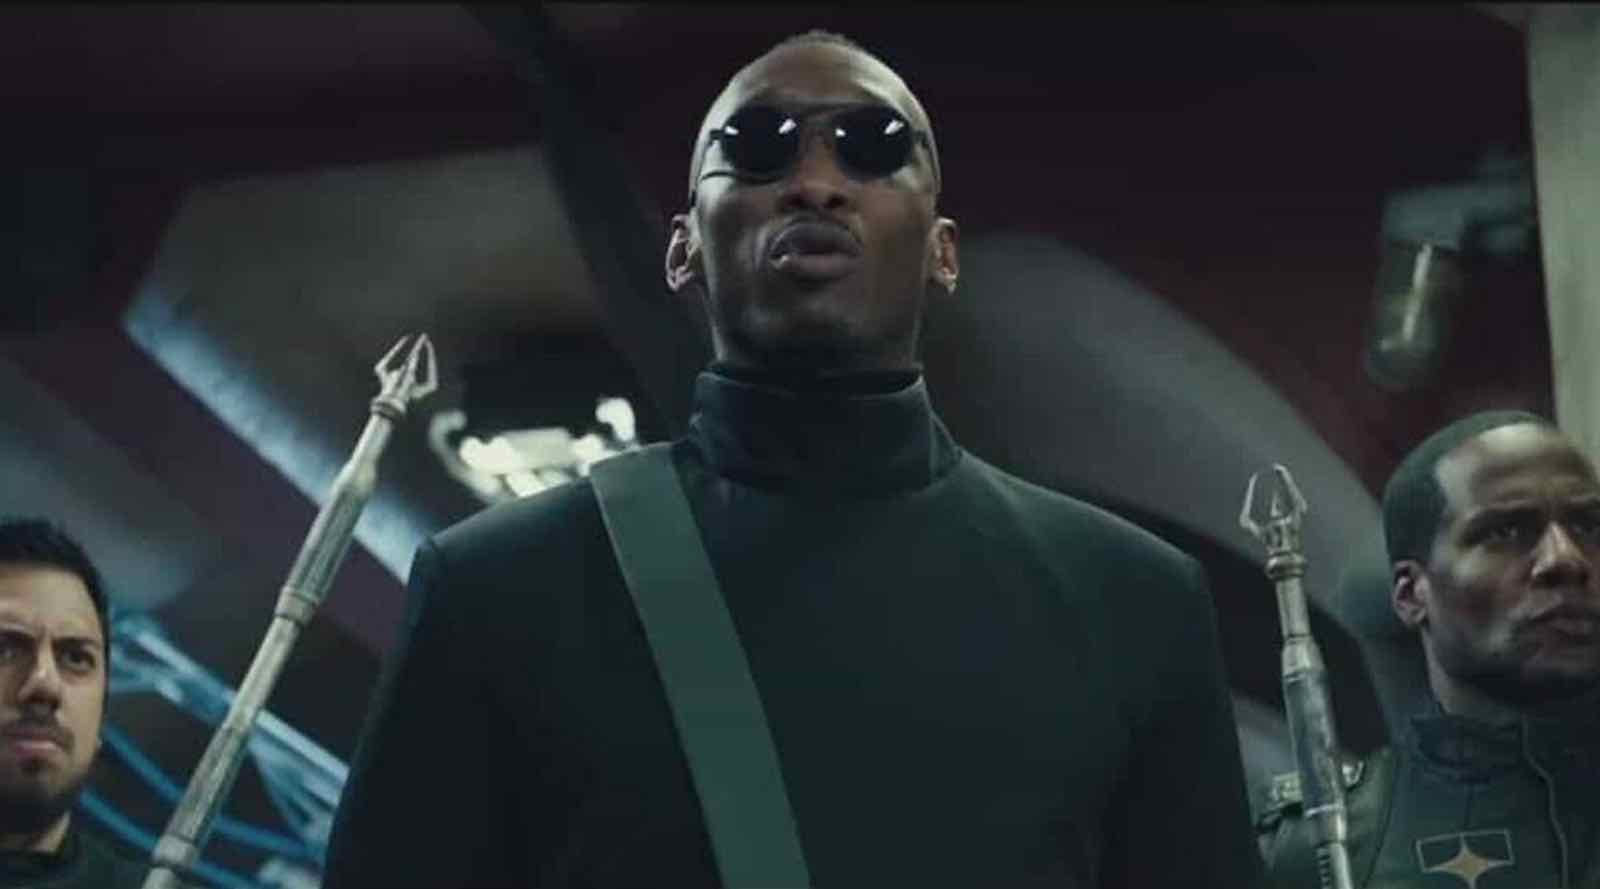 Why doesn't Marvel give fans updates on the 'Blade' movie?  – FilmyOne.com